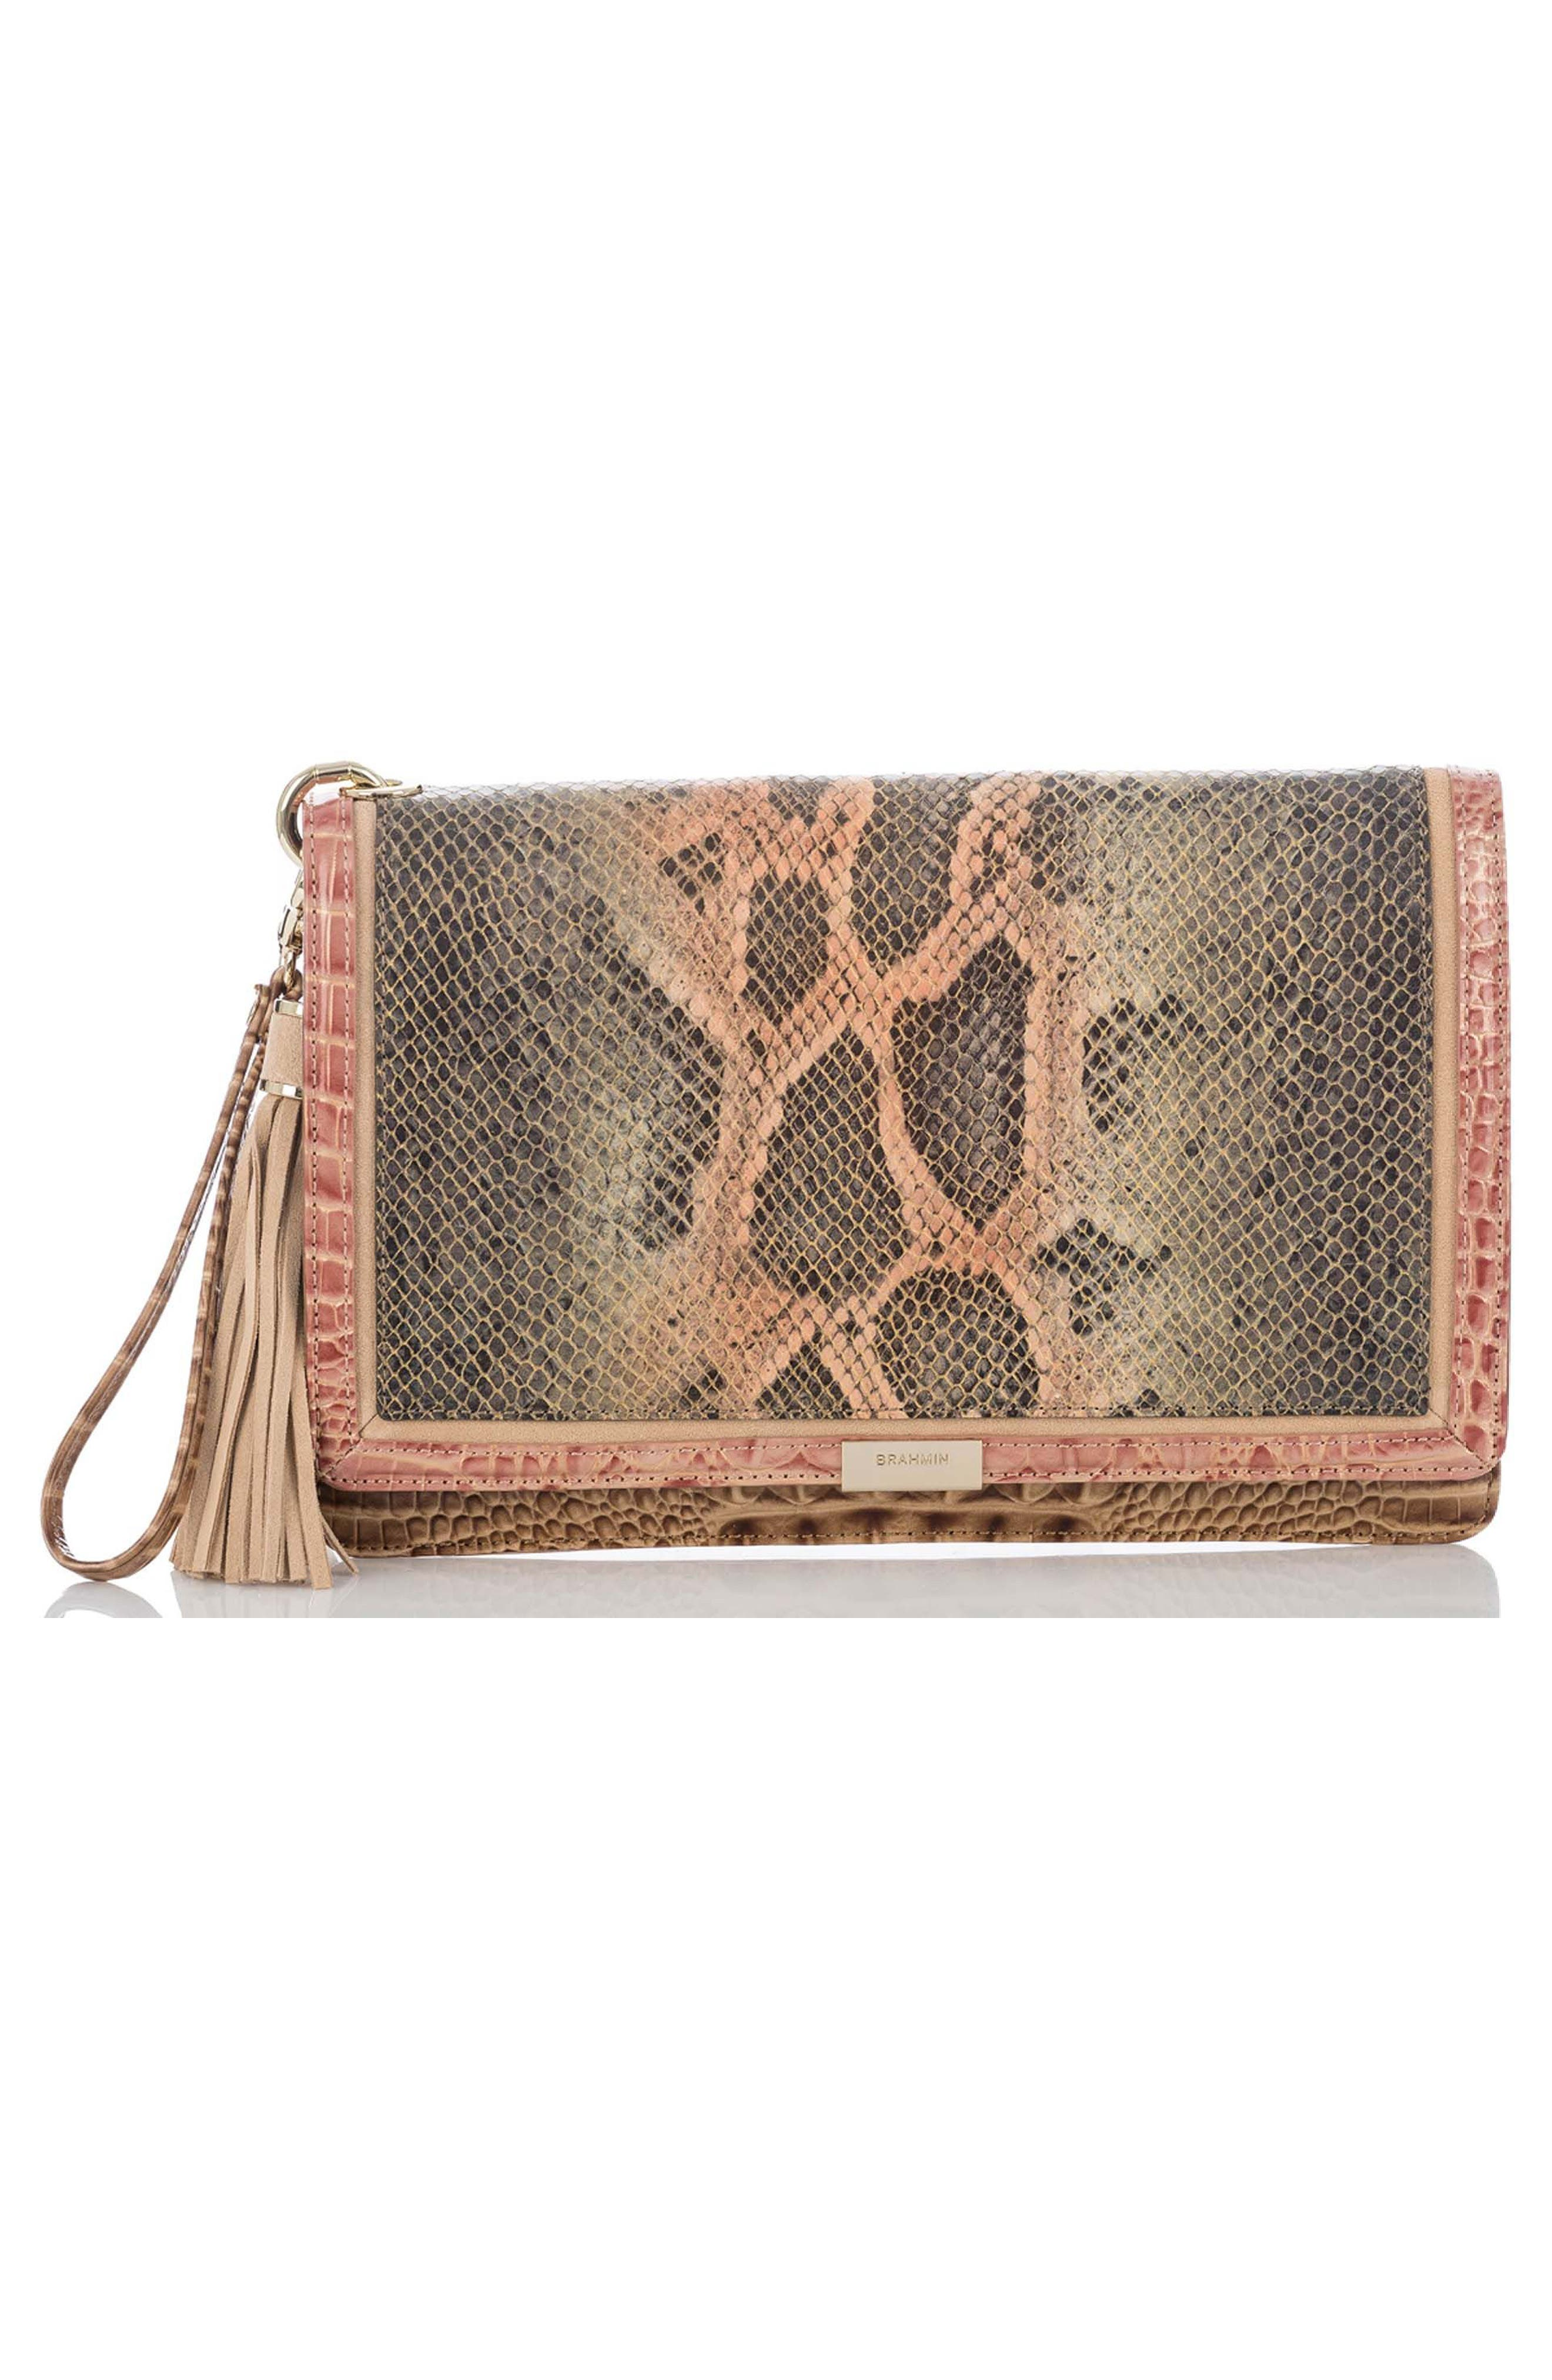 Brahmin Embossed Leather Clutch